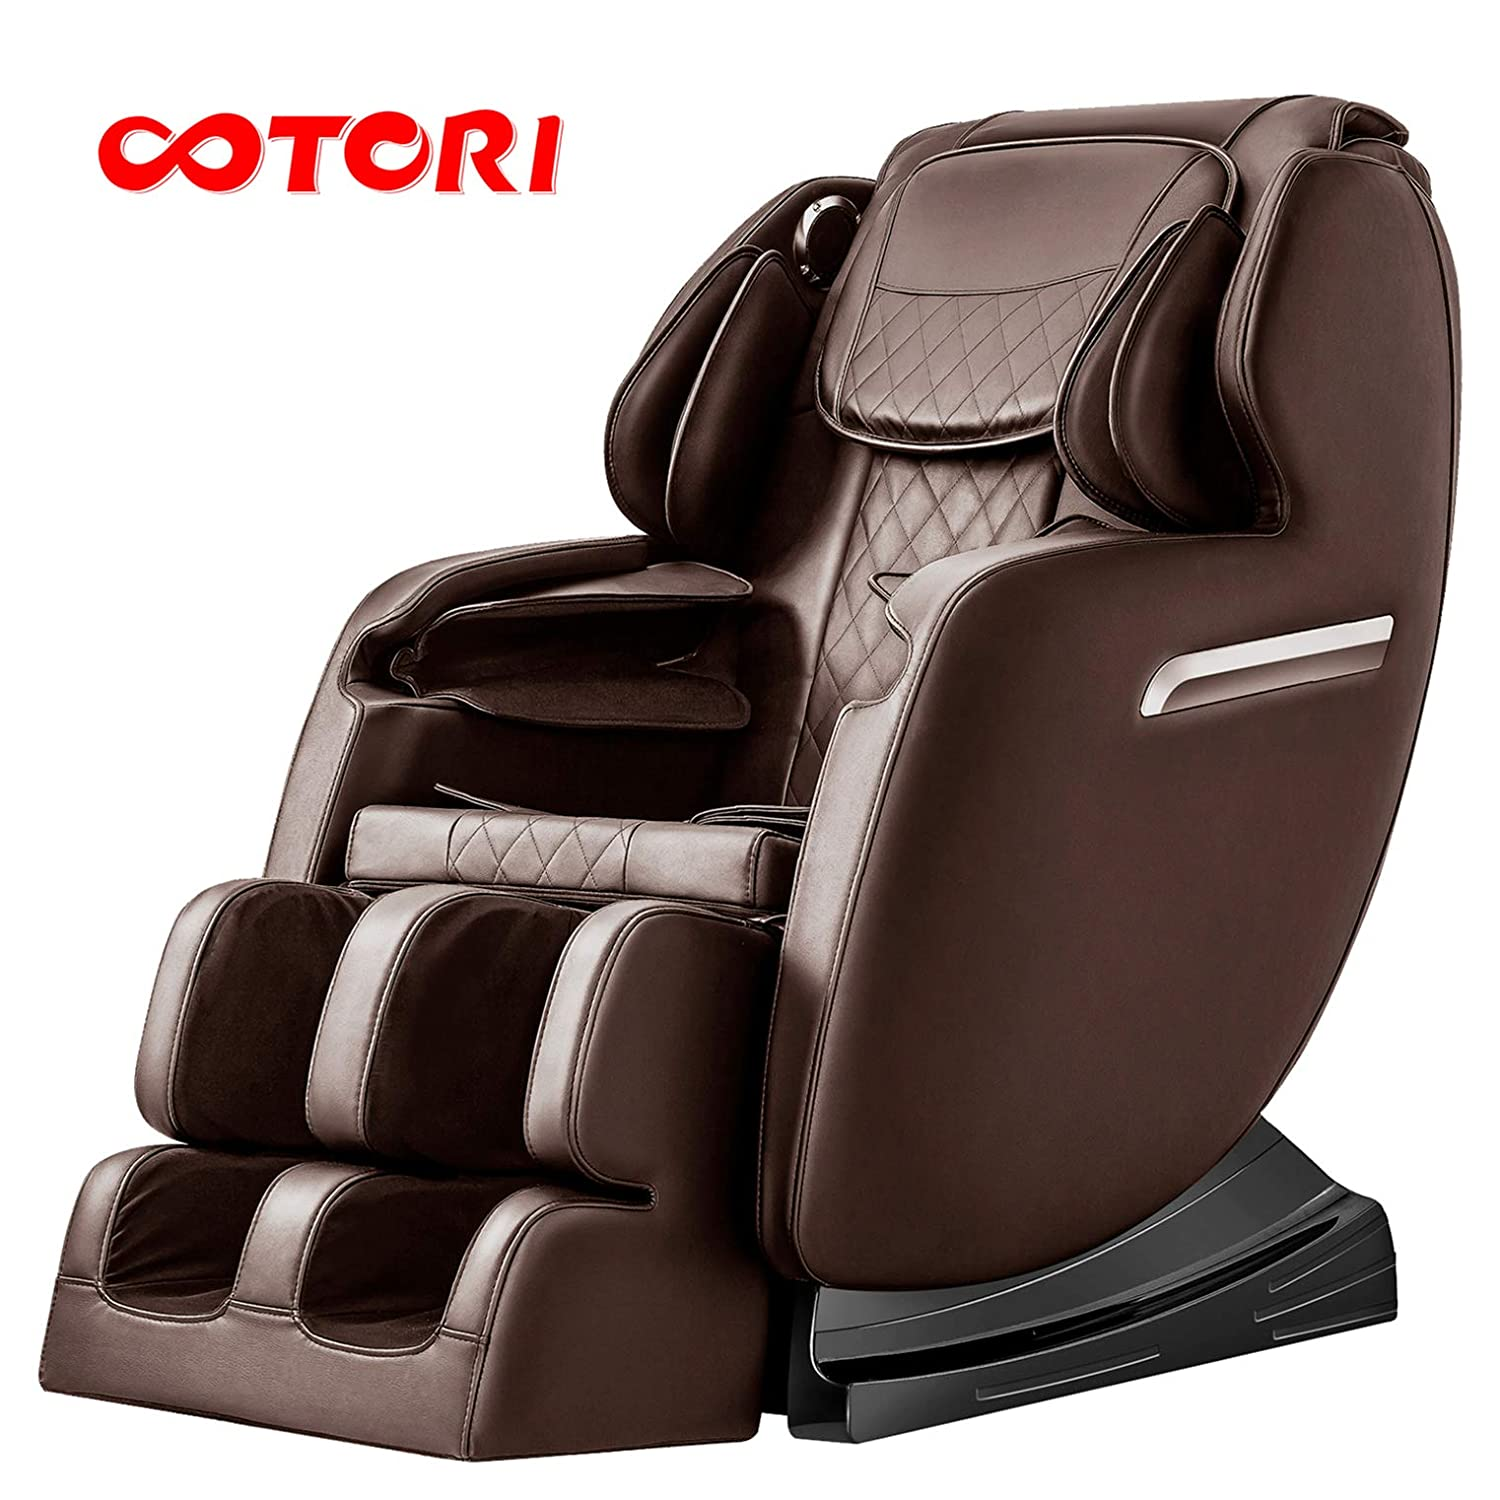 OOTORI Zero Gravity Massage Chair, S-Track Full Body Shiatsu Massage Chair, 3-Row-Footroller, Roller Massage from Neck to Hip,Bluetooth and Heater. Brown